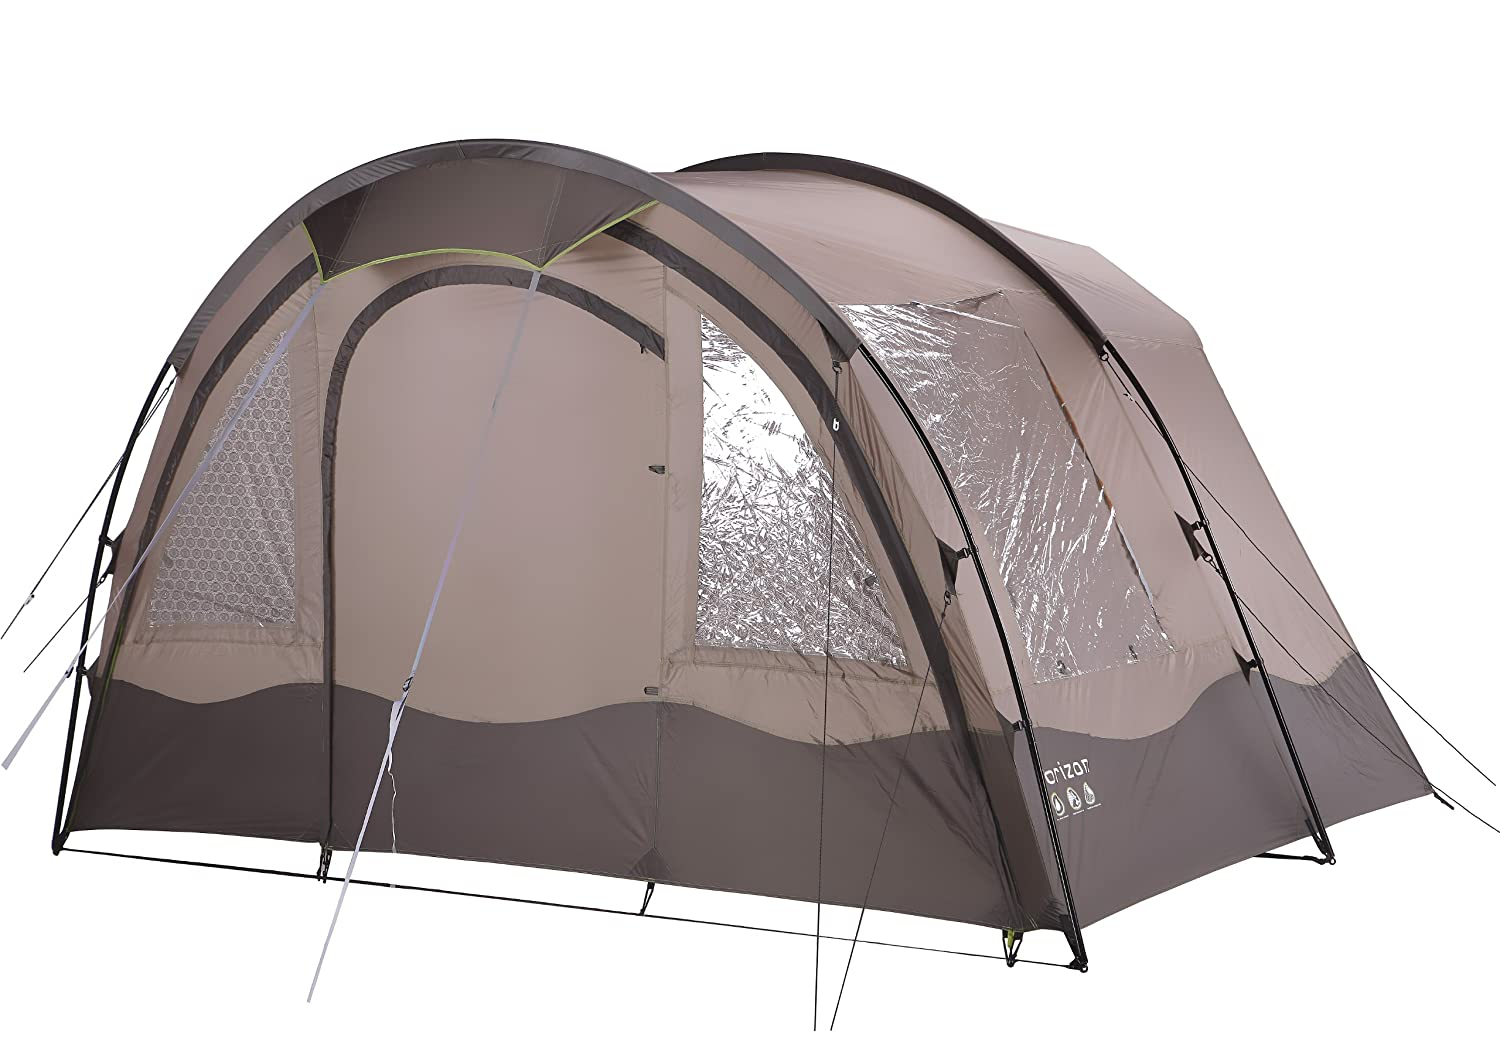 Gelert Horizon 4 / 8 Porch - Chestnut/Sandshell/Cocoa Amazon.co.uk Sports u0026 Outdoors  sc 1 st  Amazon UK & Gelert Horizon 4 / 8 Porch - Chestnut/Sandshell/Cocoa: Amazon.co ...